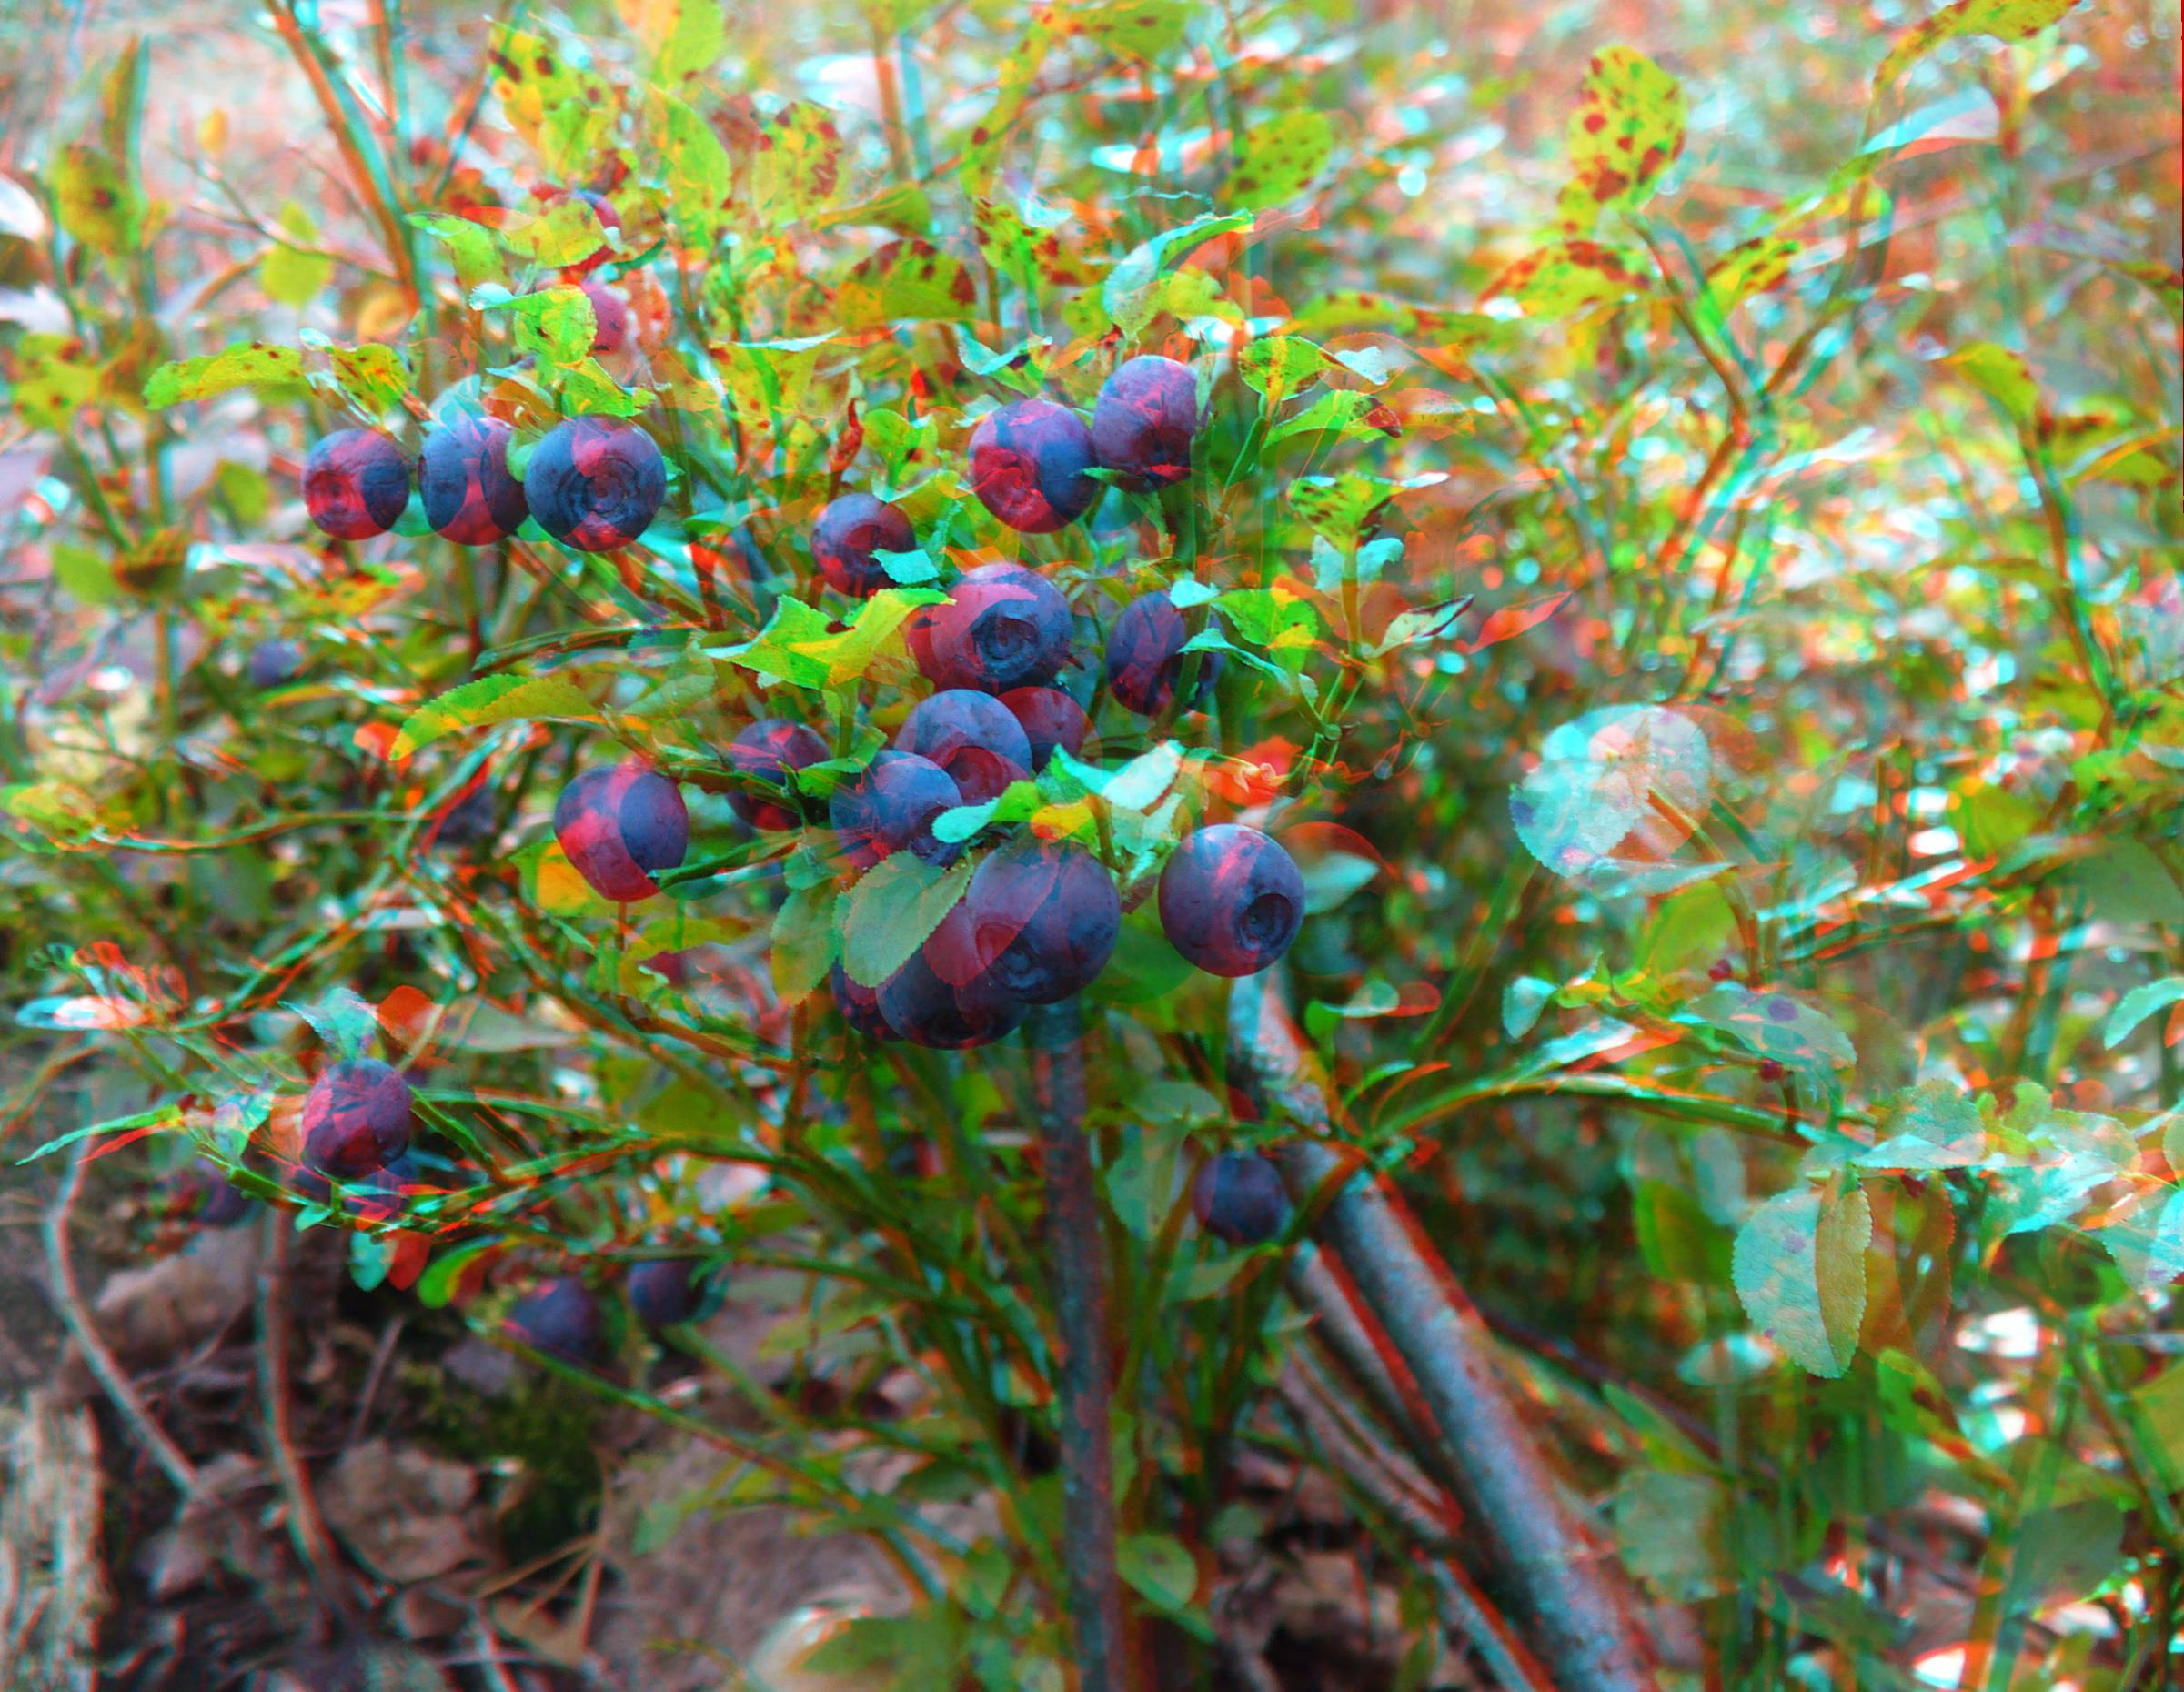 Anaglyph of bilberry - Mustikka anaglif